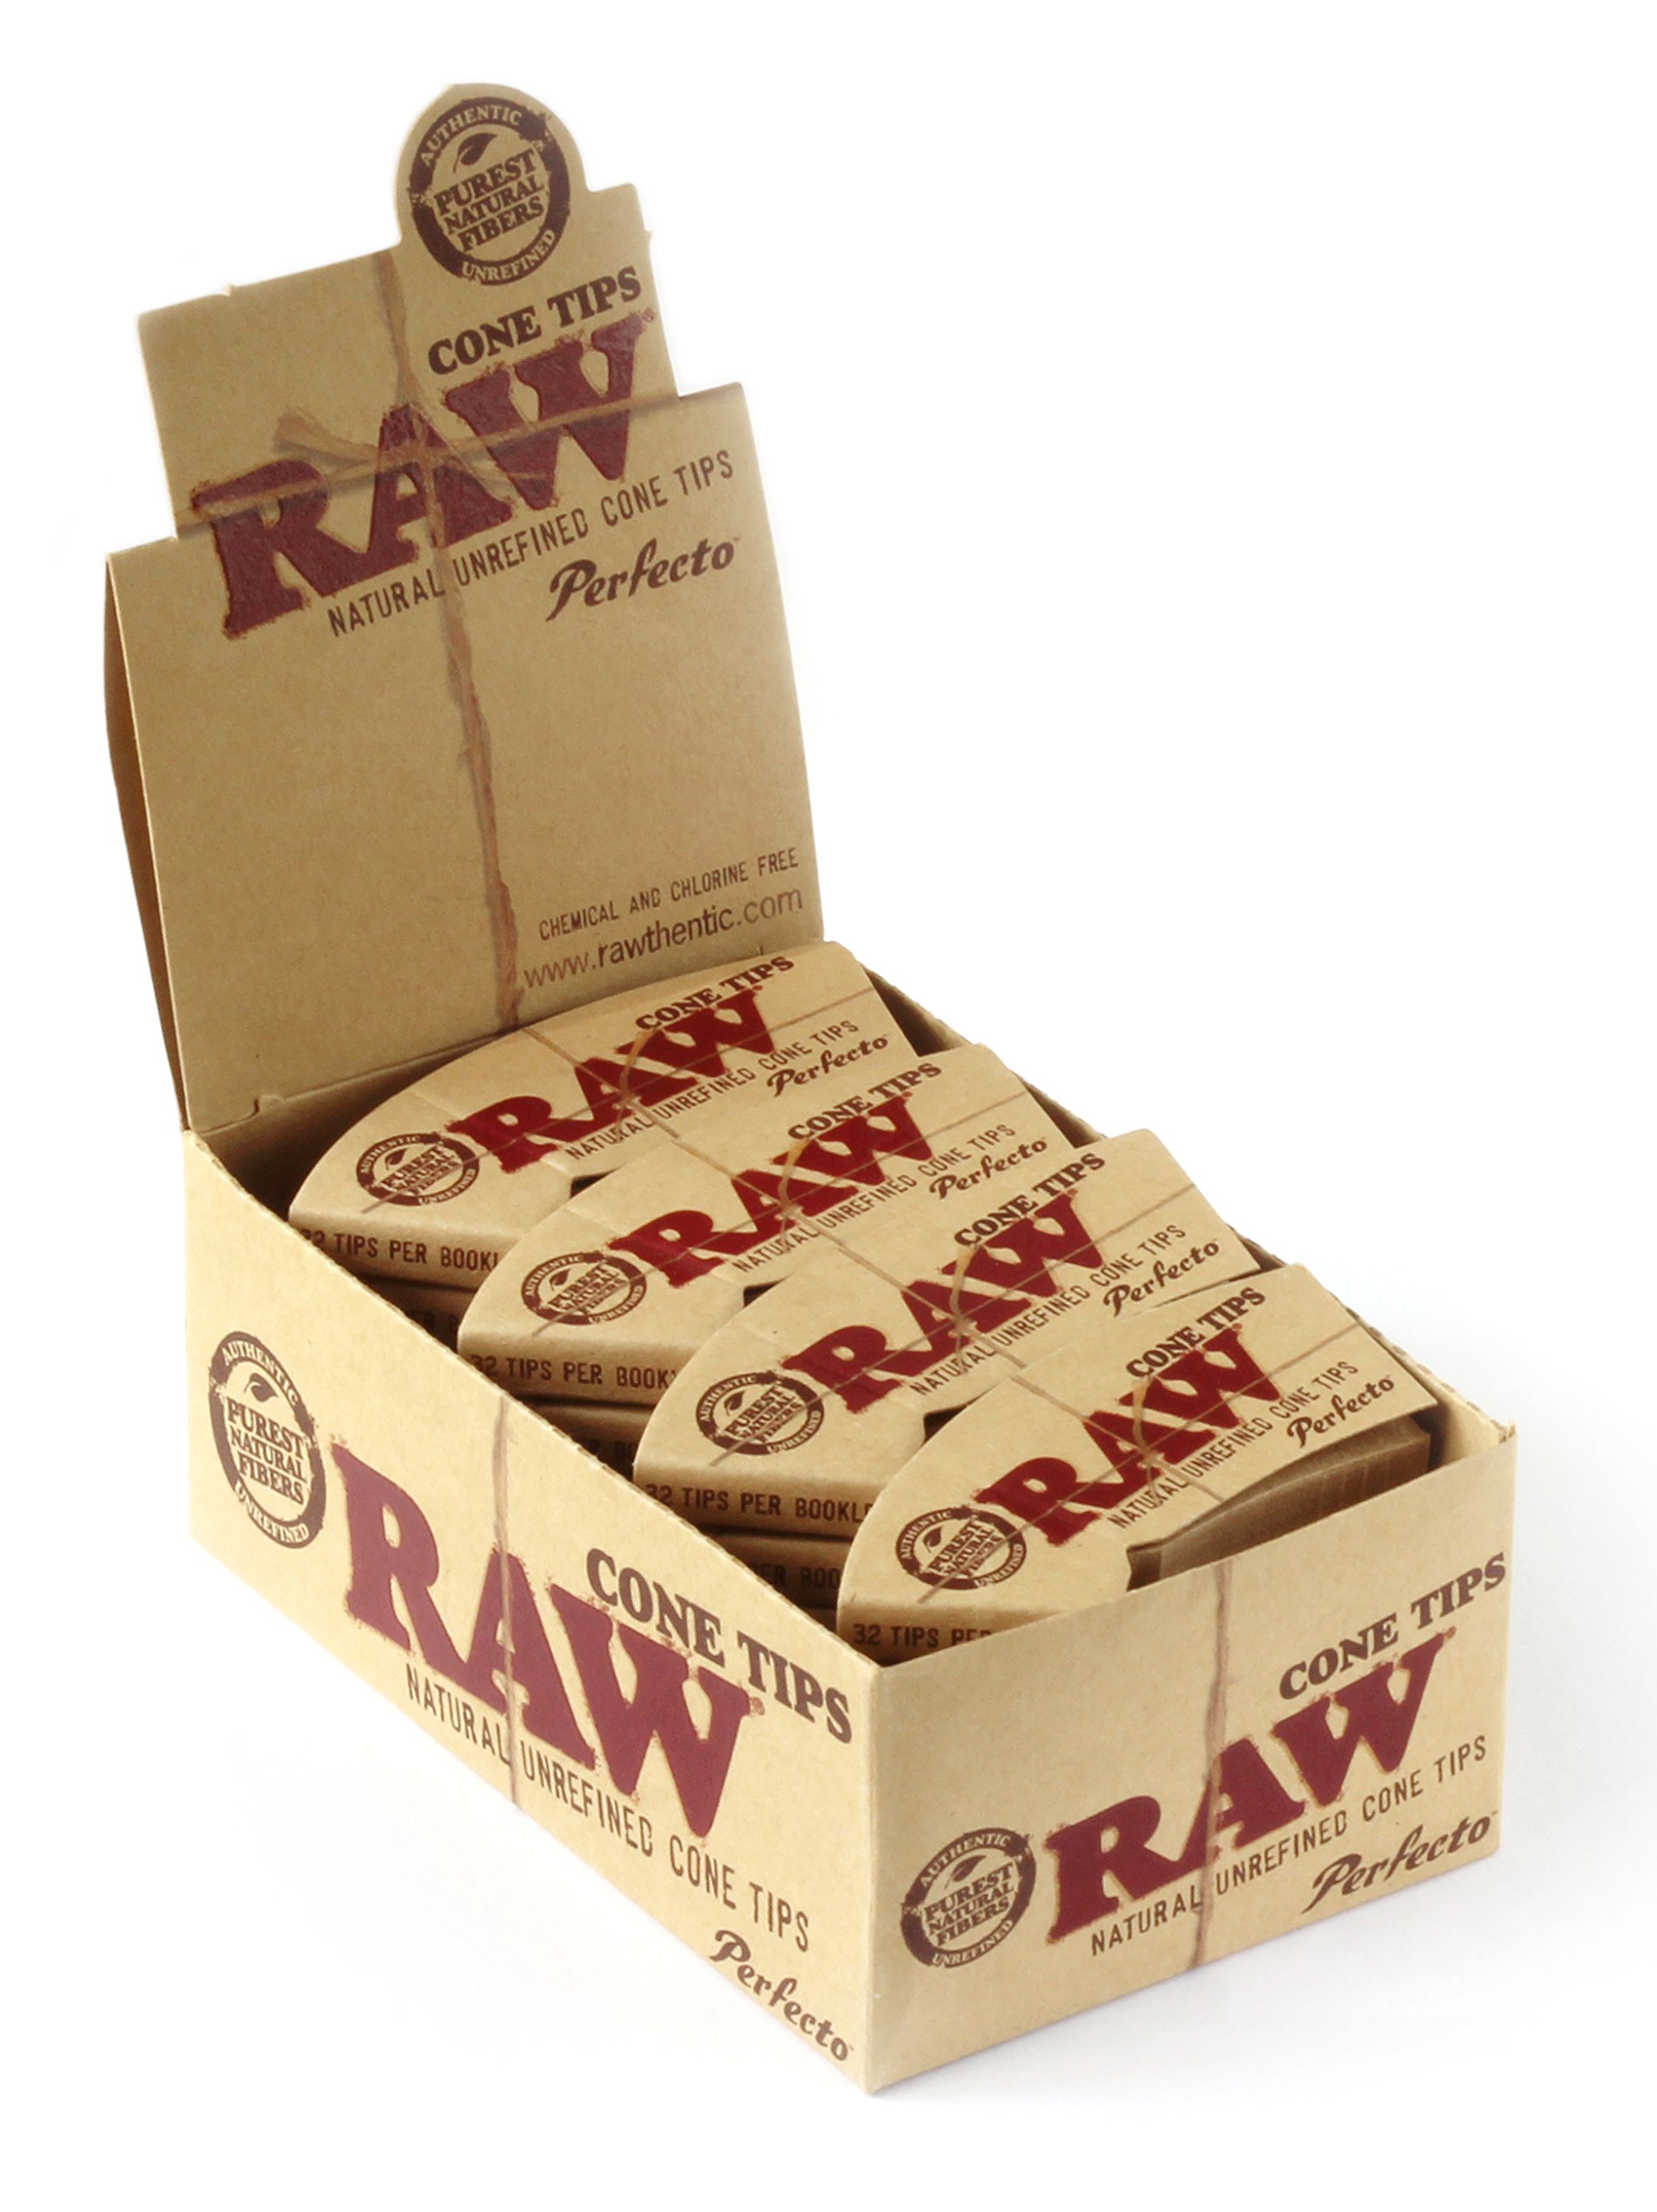 Raw Rolling Paper Perfecto Cone Tips Full Box Of 24 Packs